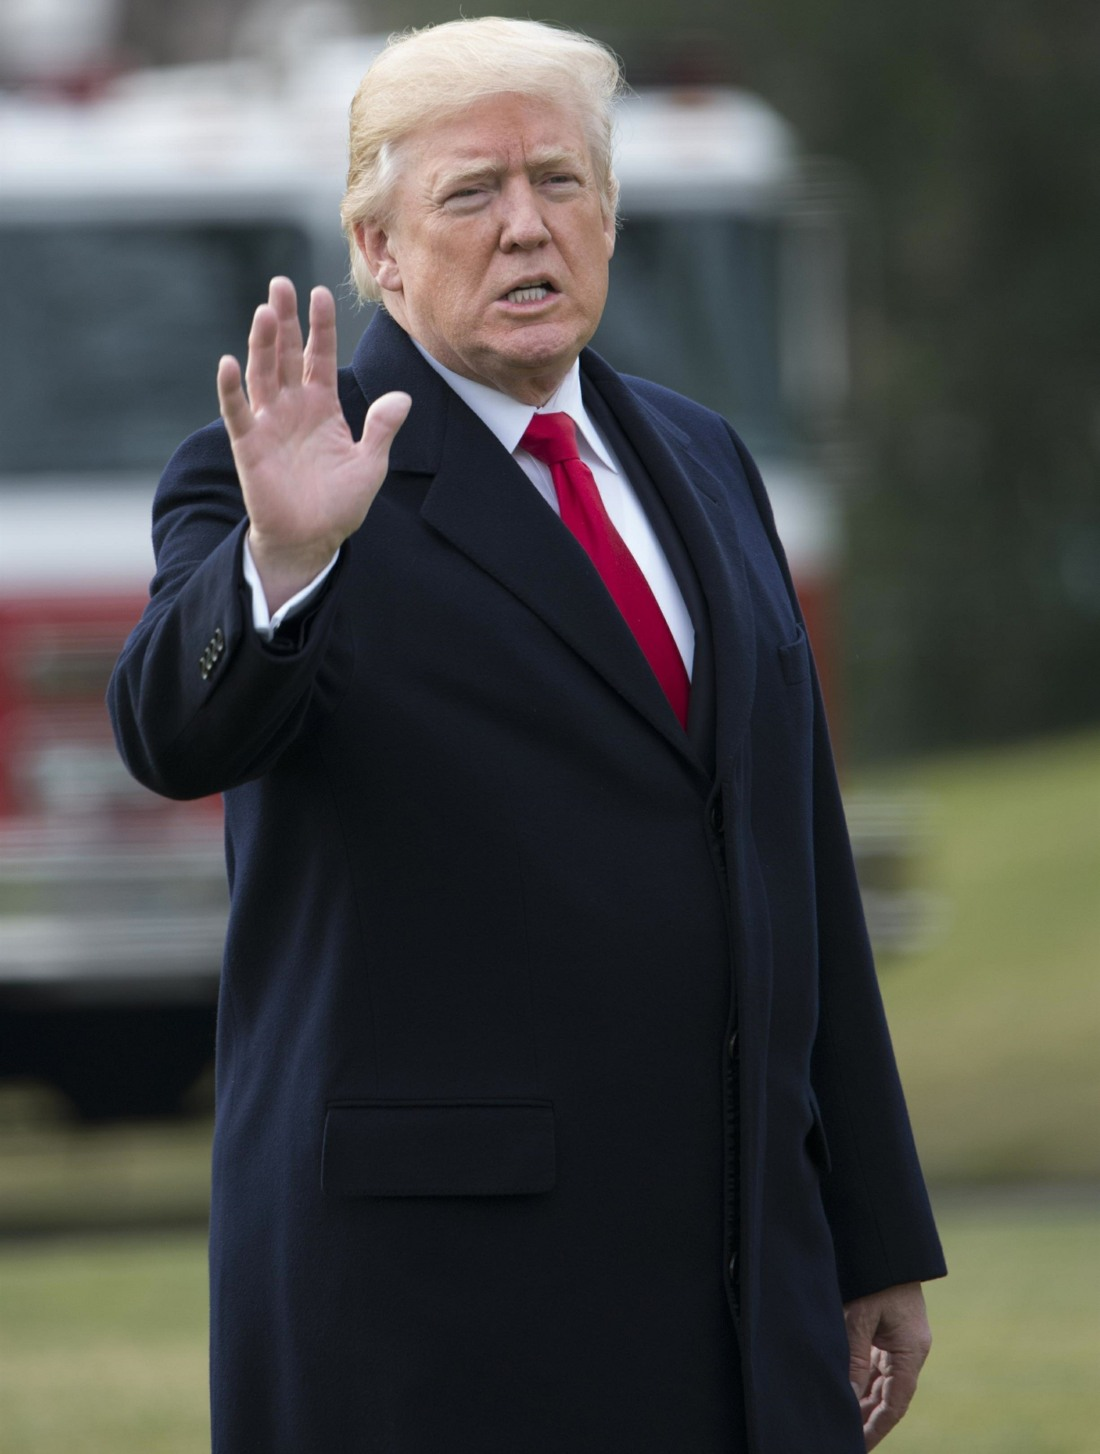 President Trump Leaves The White House For Florida